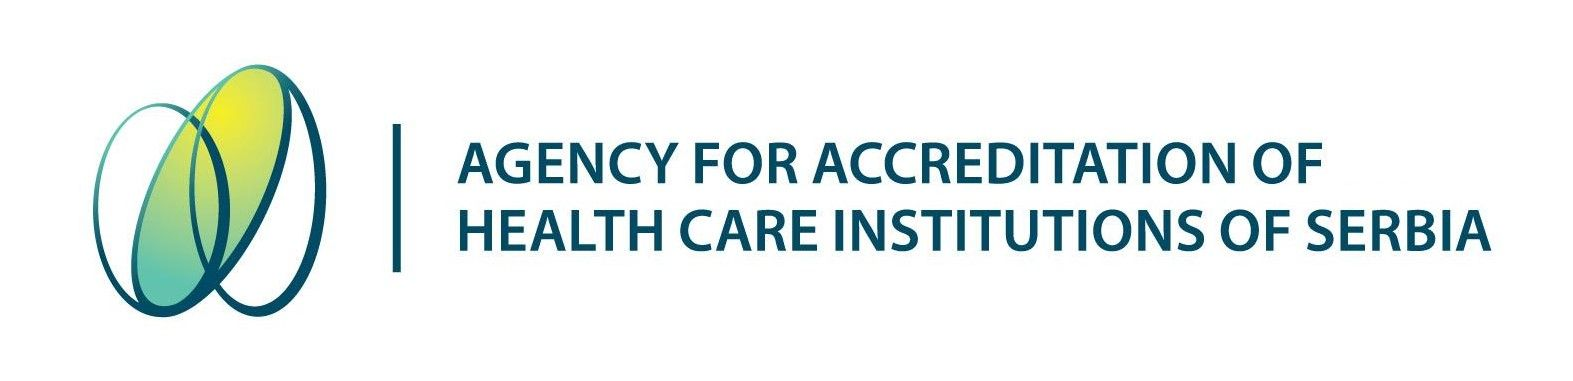 Agency for Accreditation of health care institutions of serbia Logo